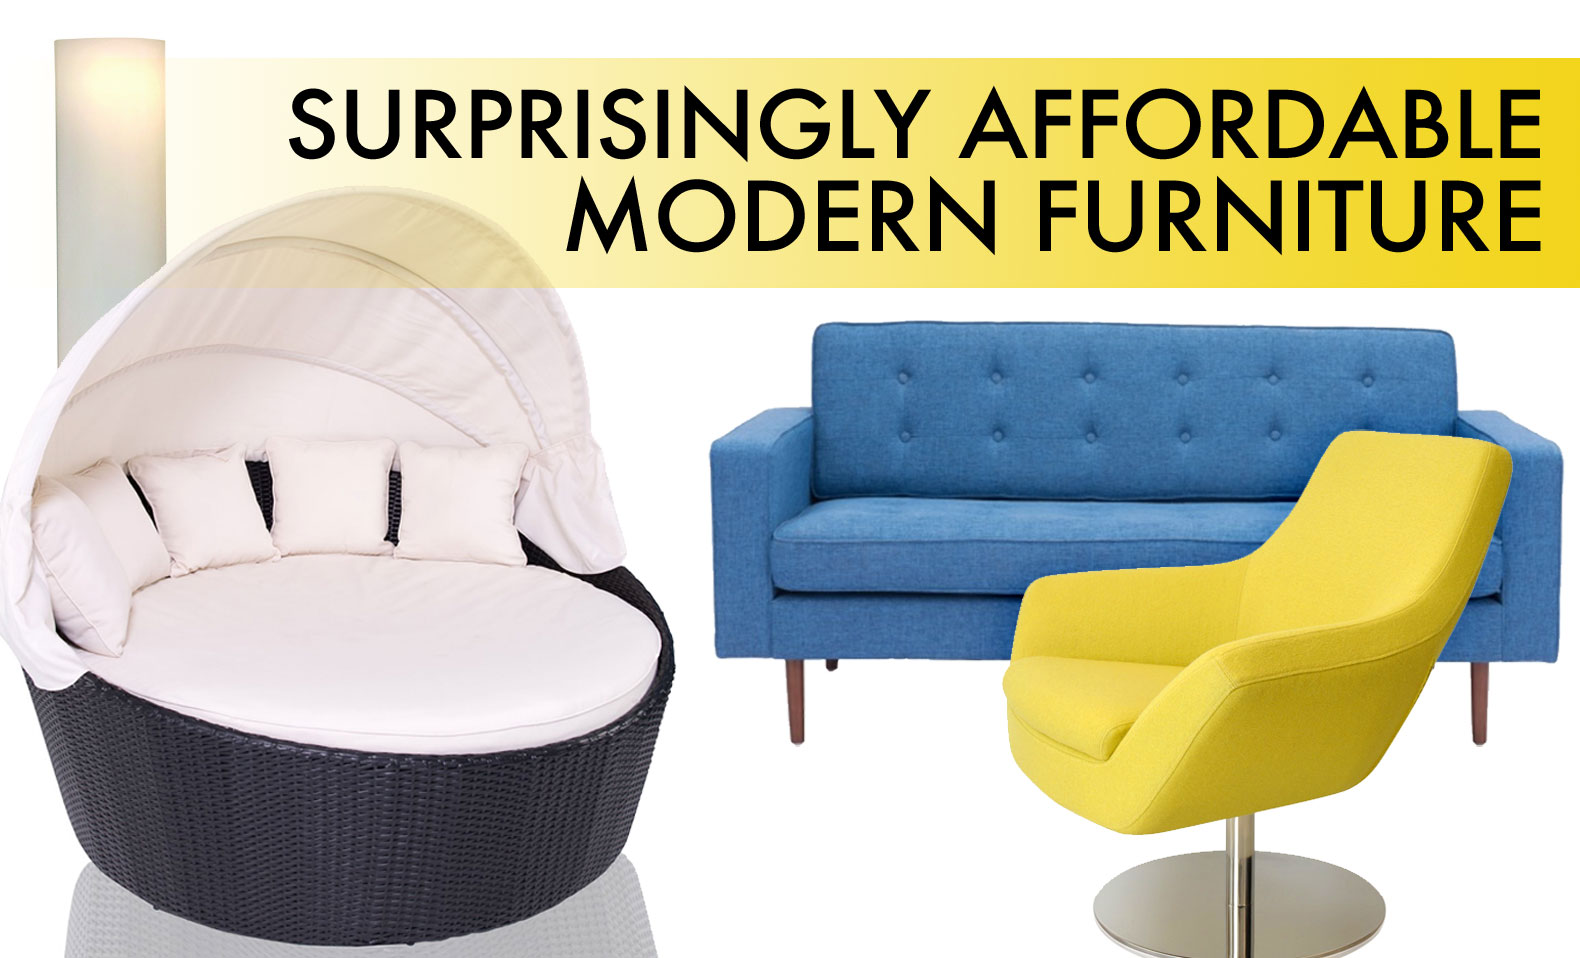 modern chairs cheap how to make bean bag chair filling 14 surprisingly affordable pieces of furniture that